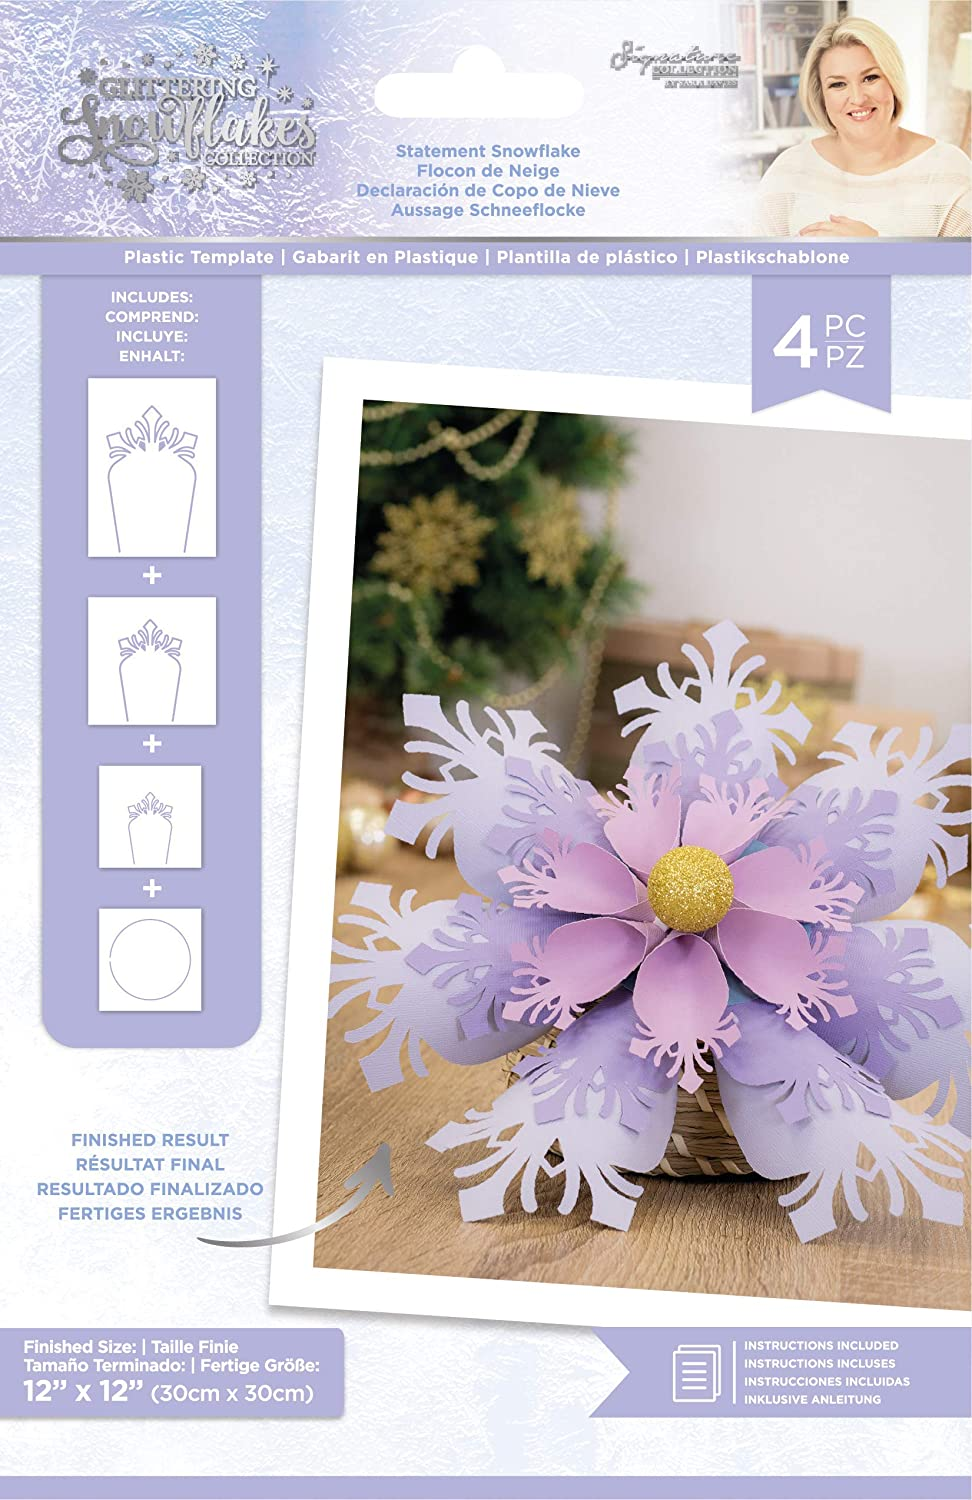 Sara Signature Glittering Collection-Plastic Template-Statement Snowflake one Size